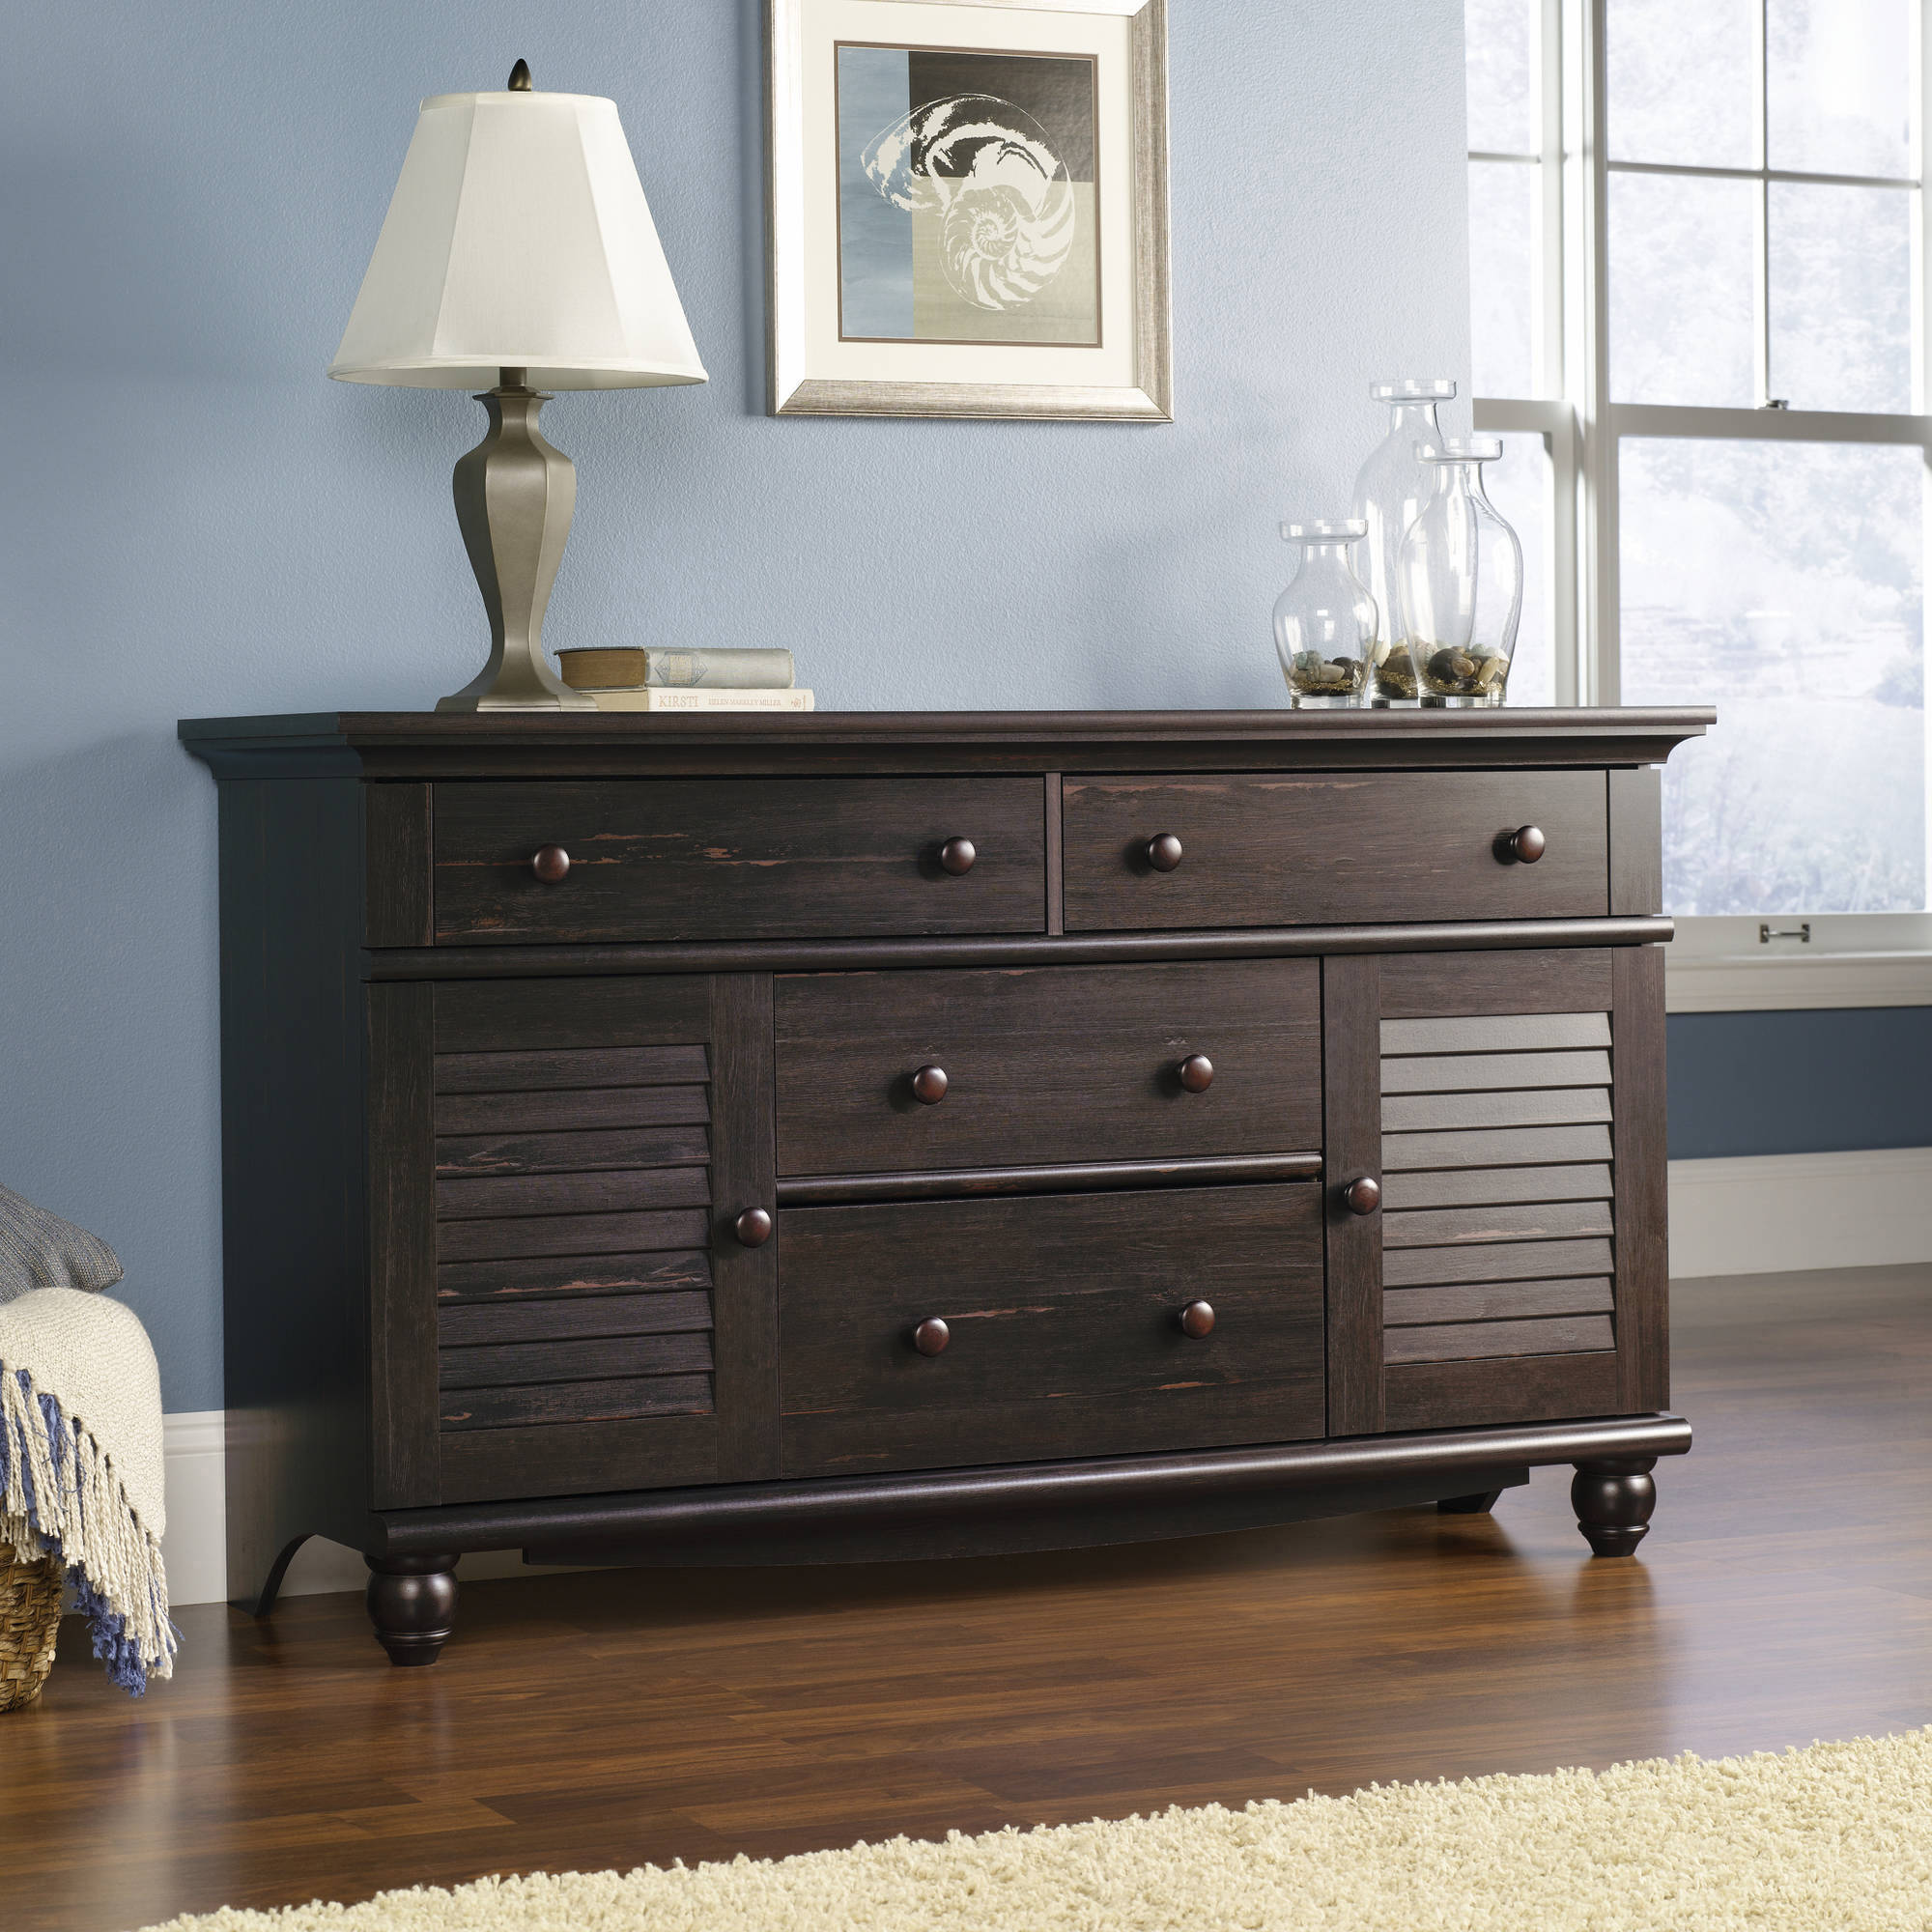 Sauder Harbor View Dresser, Antiqued Paint Finish